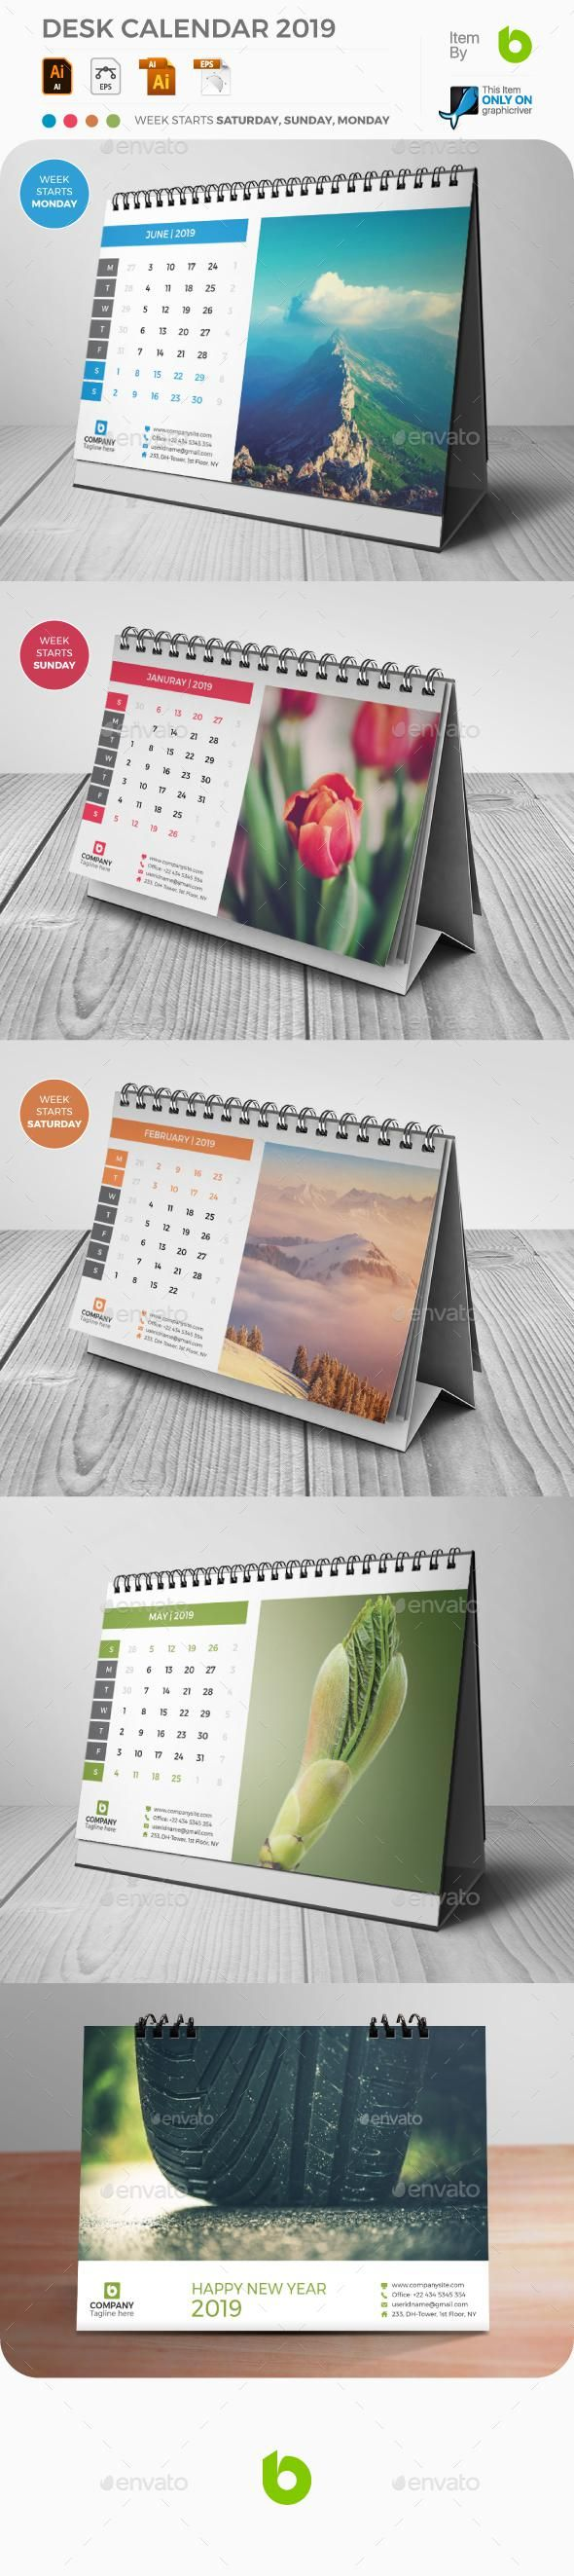 desk calendar 2018 for 7 graphicriver calendar stationery